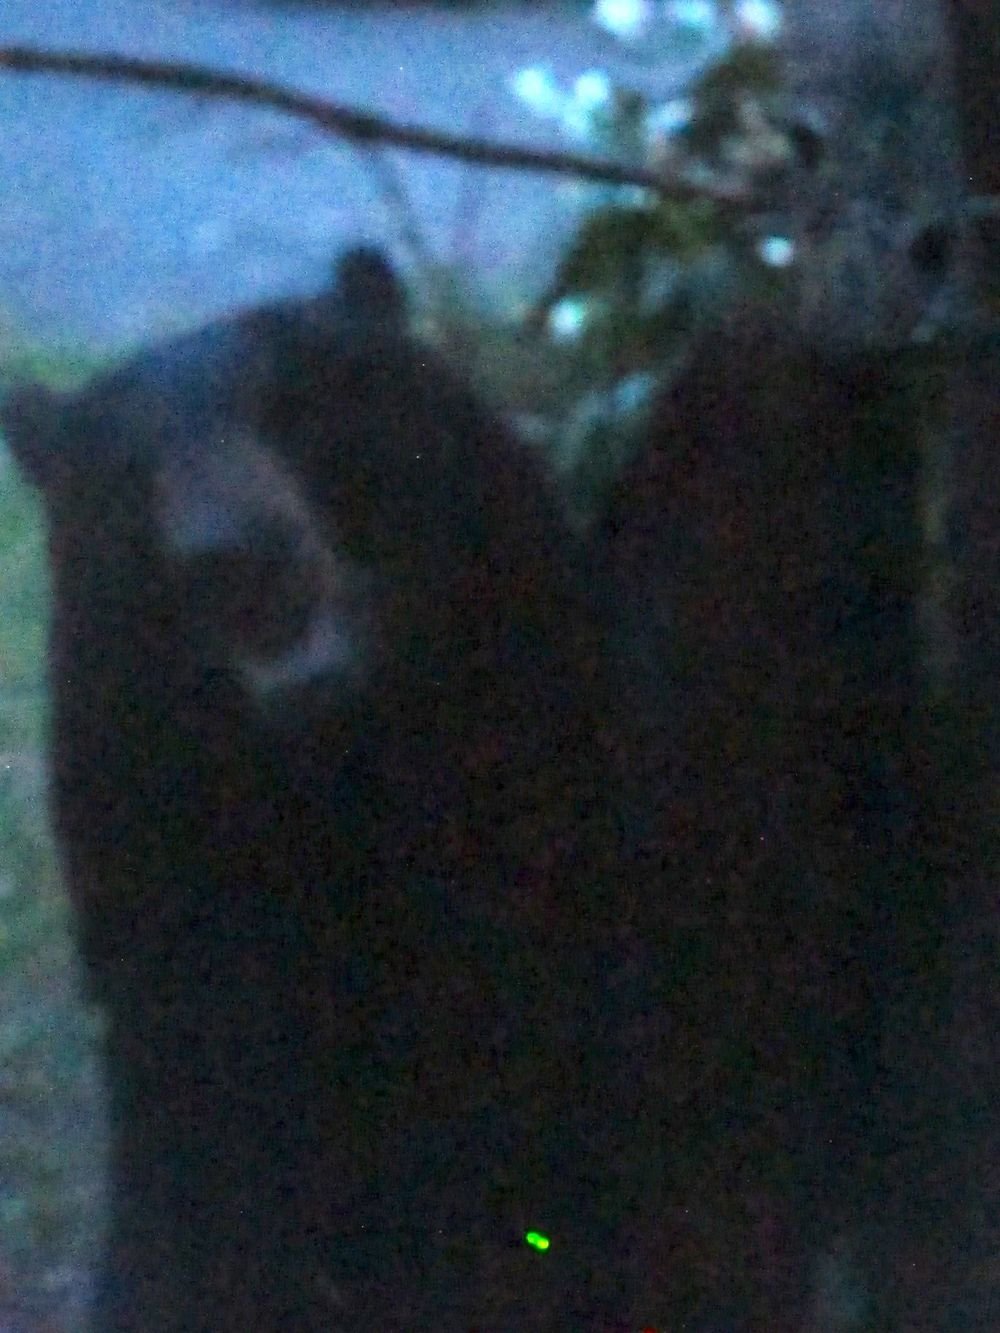 A black bear visited our house the other evening and chowed down on seed from all of our feeders. He or she also bent a steel pole on which one of our hummingbird feeders hangs.